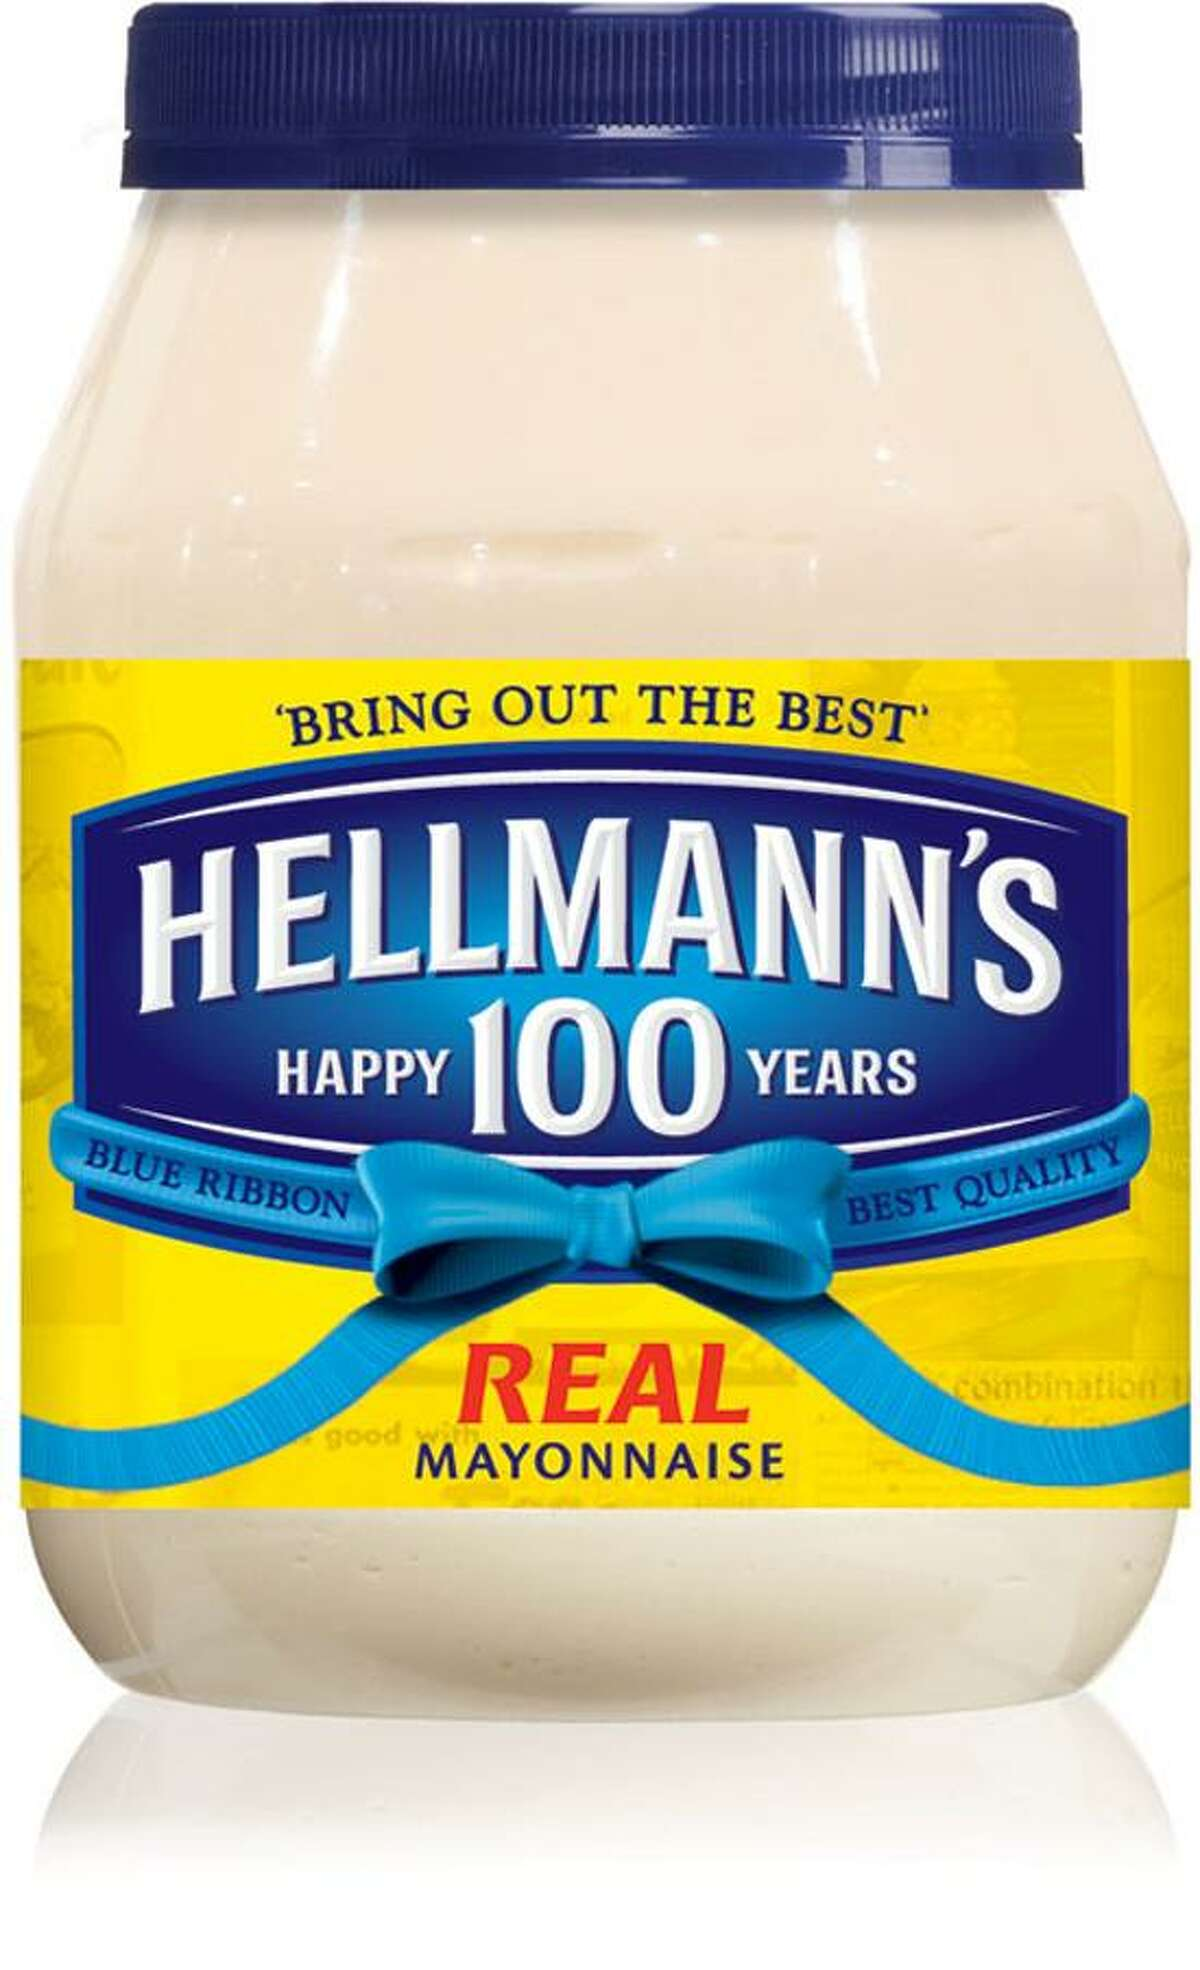 This undated image provided by Hellman's shows Hellmann's mayonnaise's special anniversary packaging. Hellman's turns 100 in 2013 and to celebrate the anniversary, owner Unilever Food is launching a marketing campaign including a Facebook page and YouTube videos featuring chef Mario Batali cooking up his favorite Hellman's recipes, a smartphone app and a June event featuring the world's largest picnic table. (AP Photo/Hellman's)